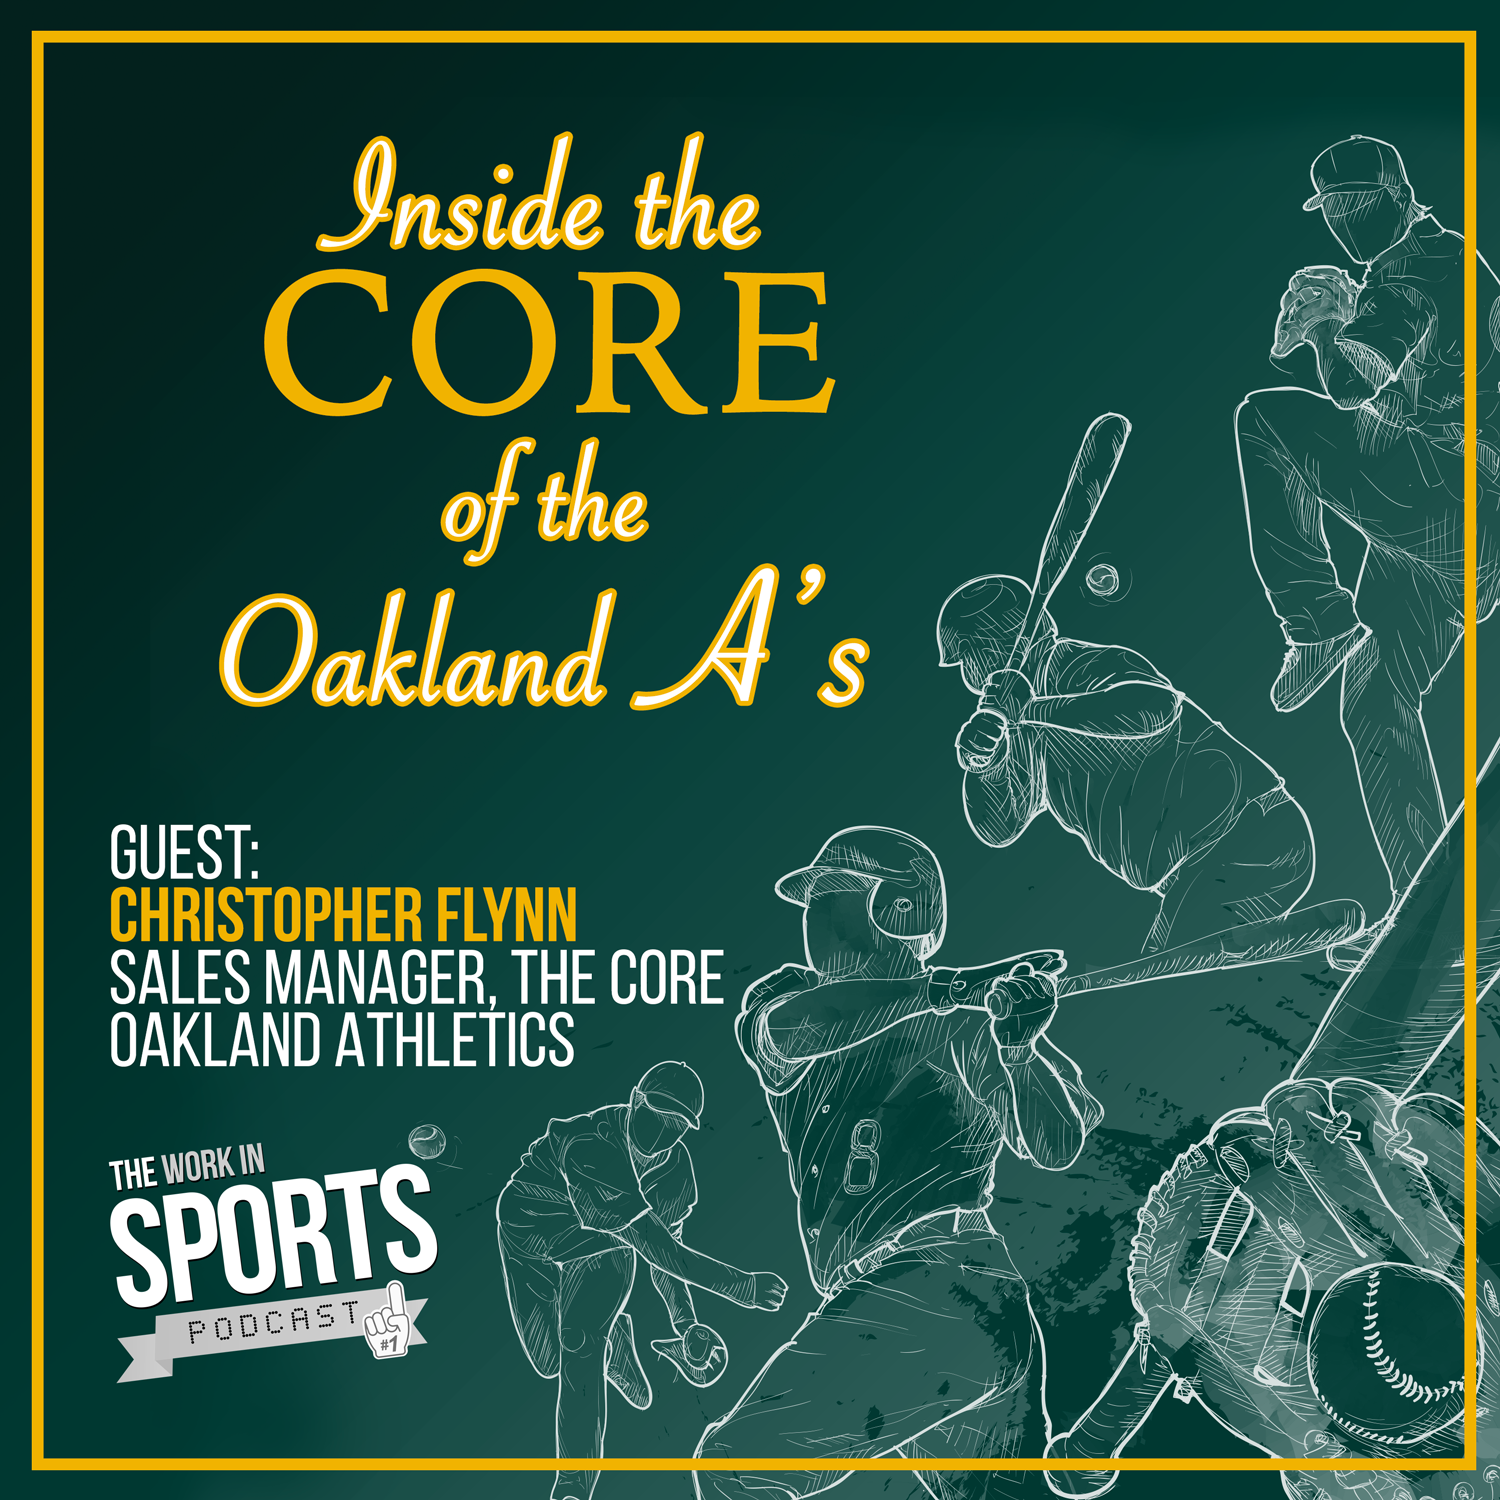 christopher flynn oakland a's work in sports podcast